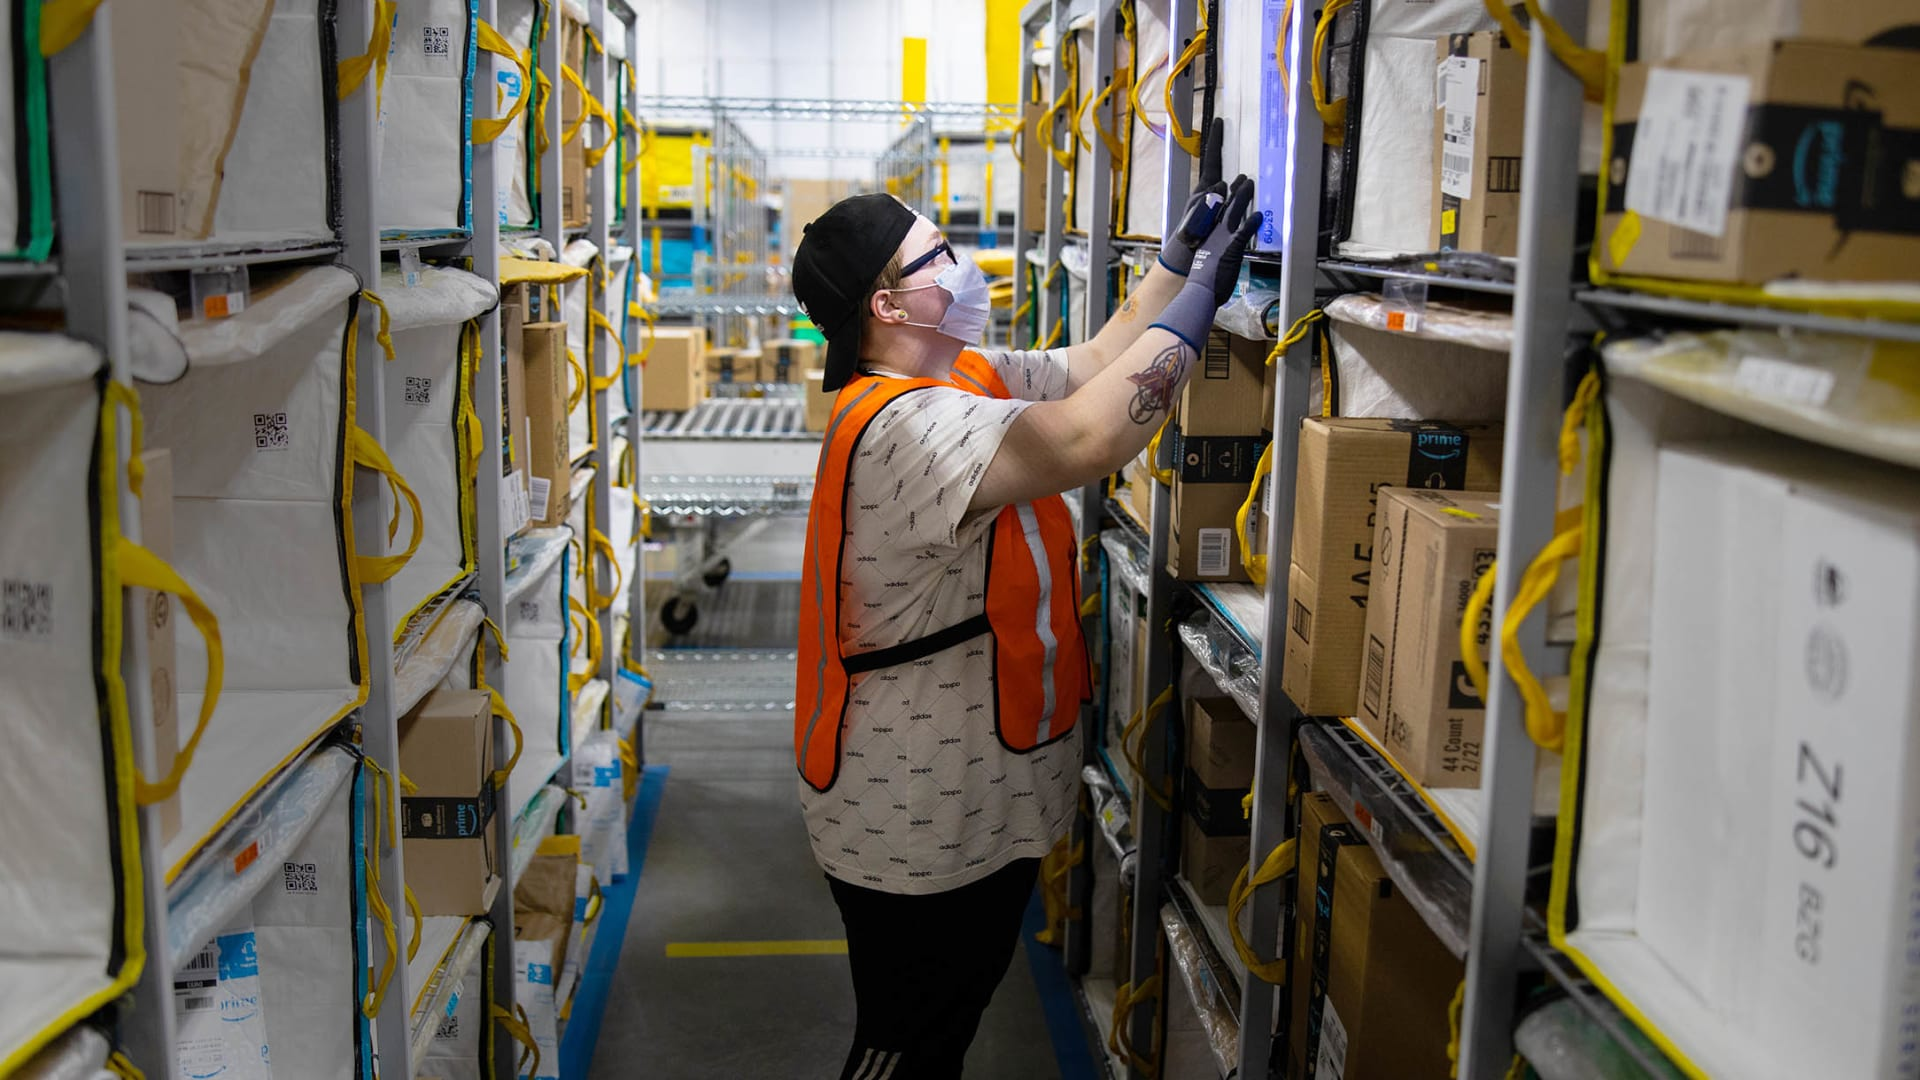 Amazon Wants to Be the World's Best Employer. A Former Warehouse Employee Has Some Advice